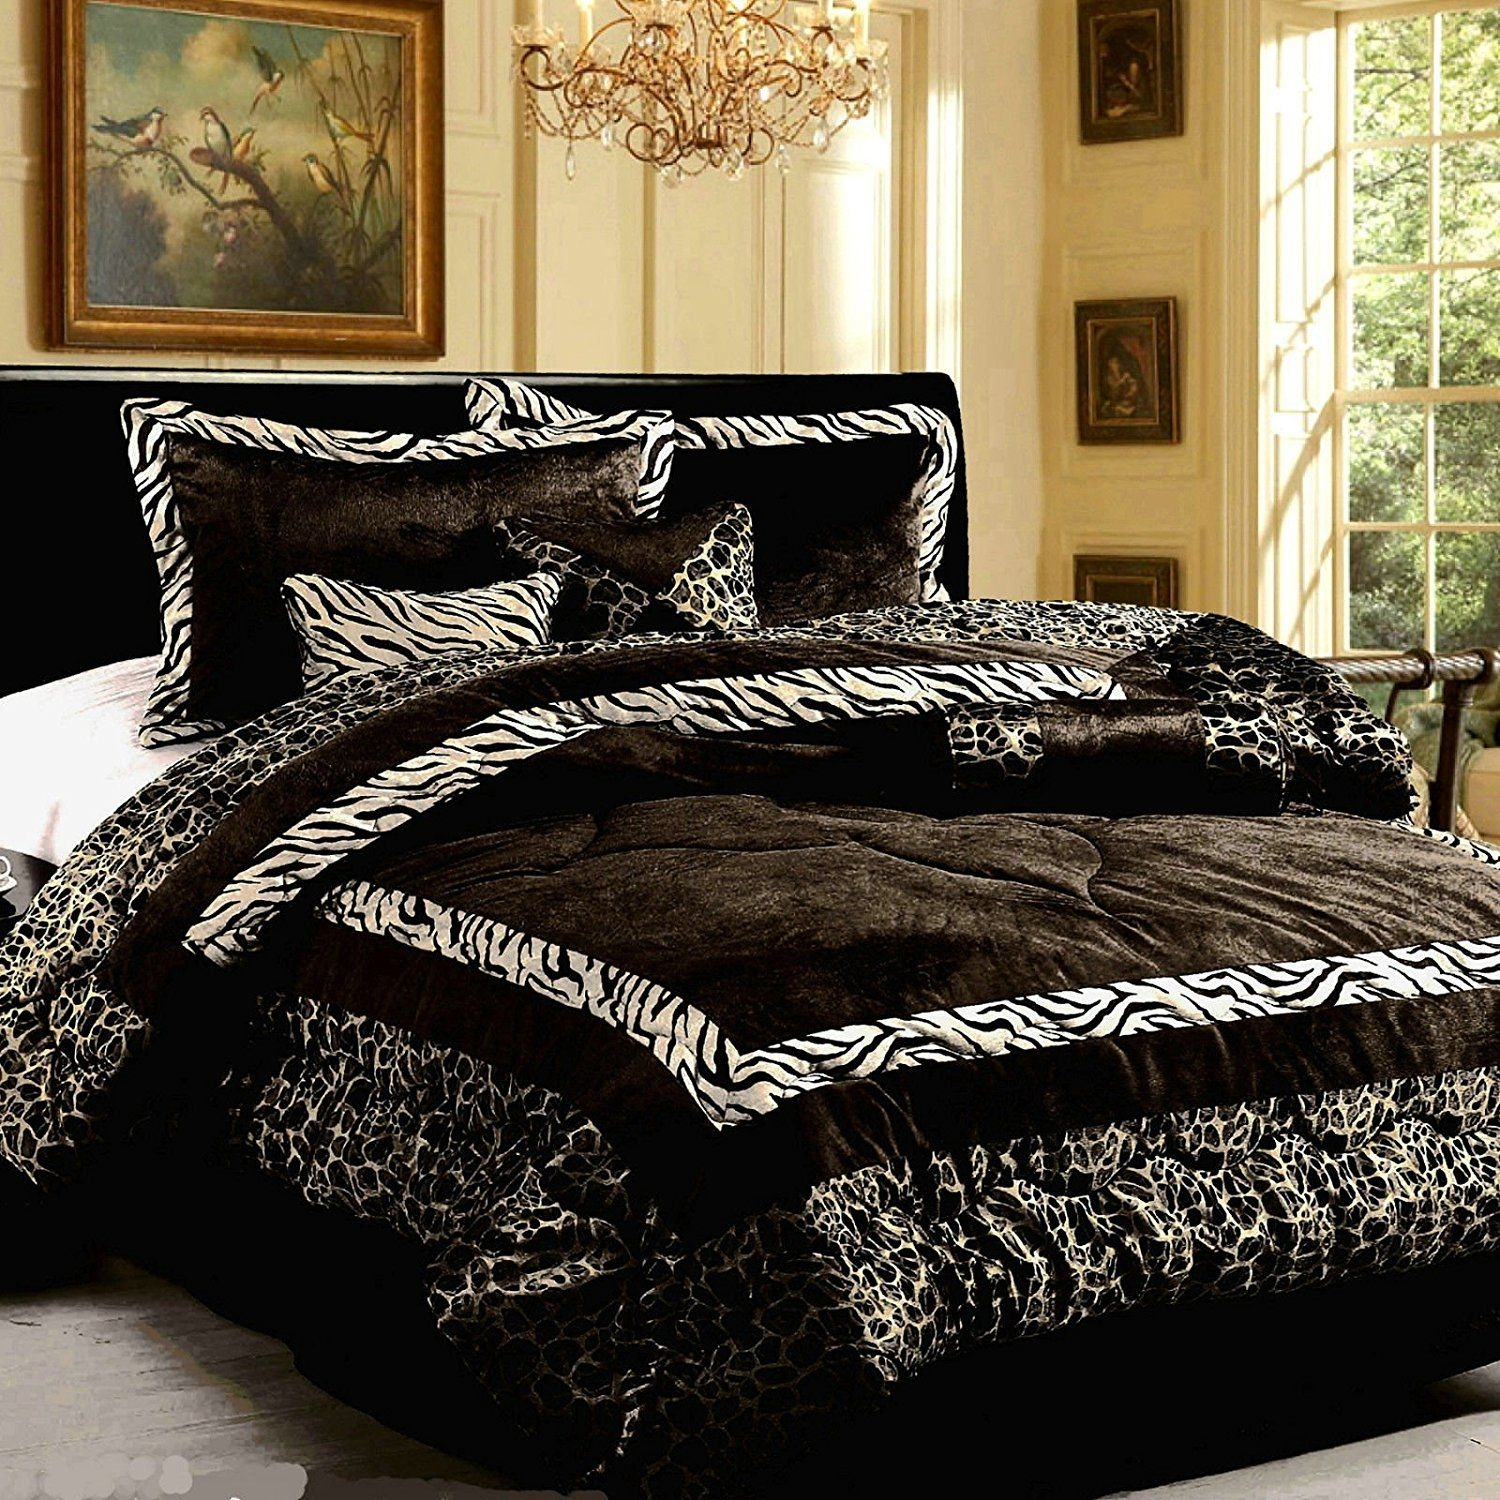 15PC Luxury Faux Fur Safarina Black & White Zebra Animal King Comforter Set with Matching Curtain